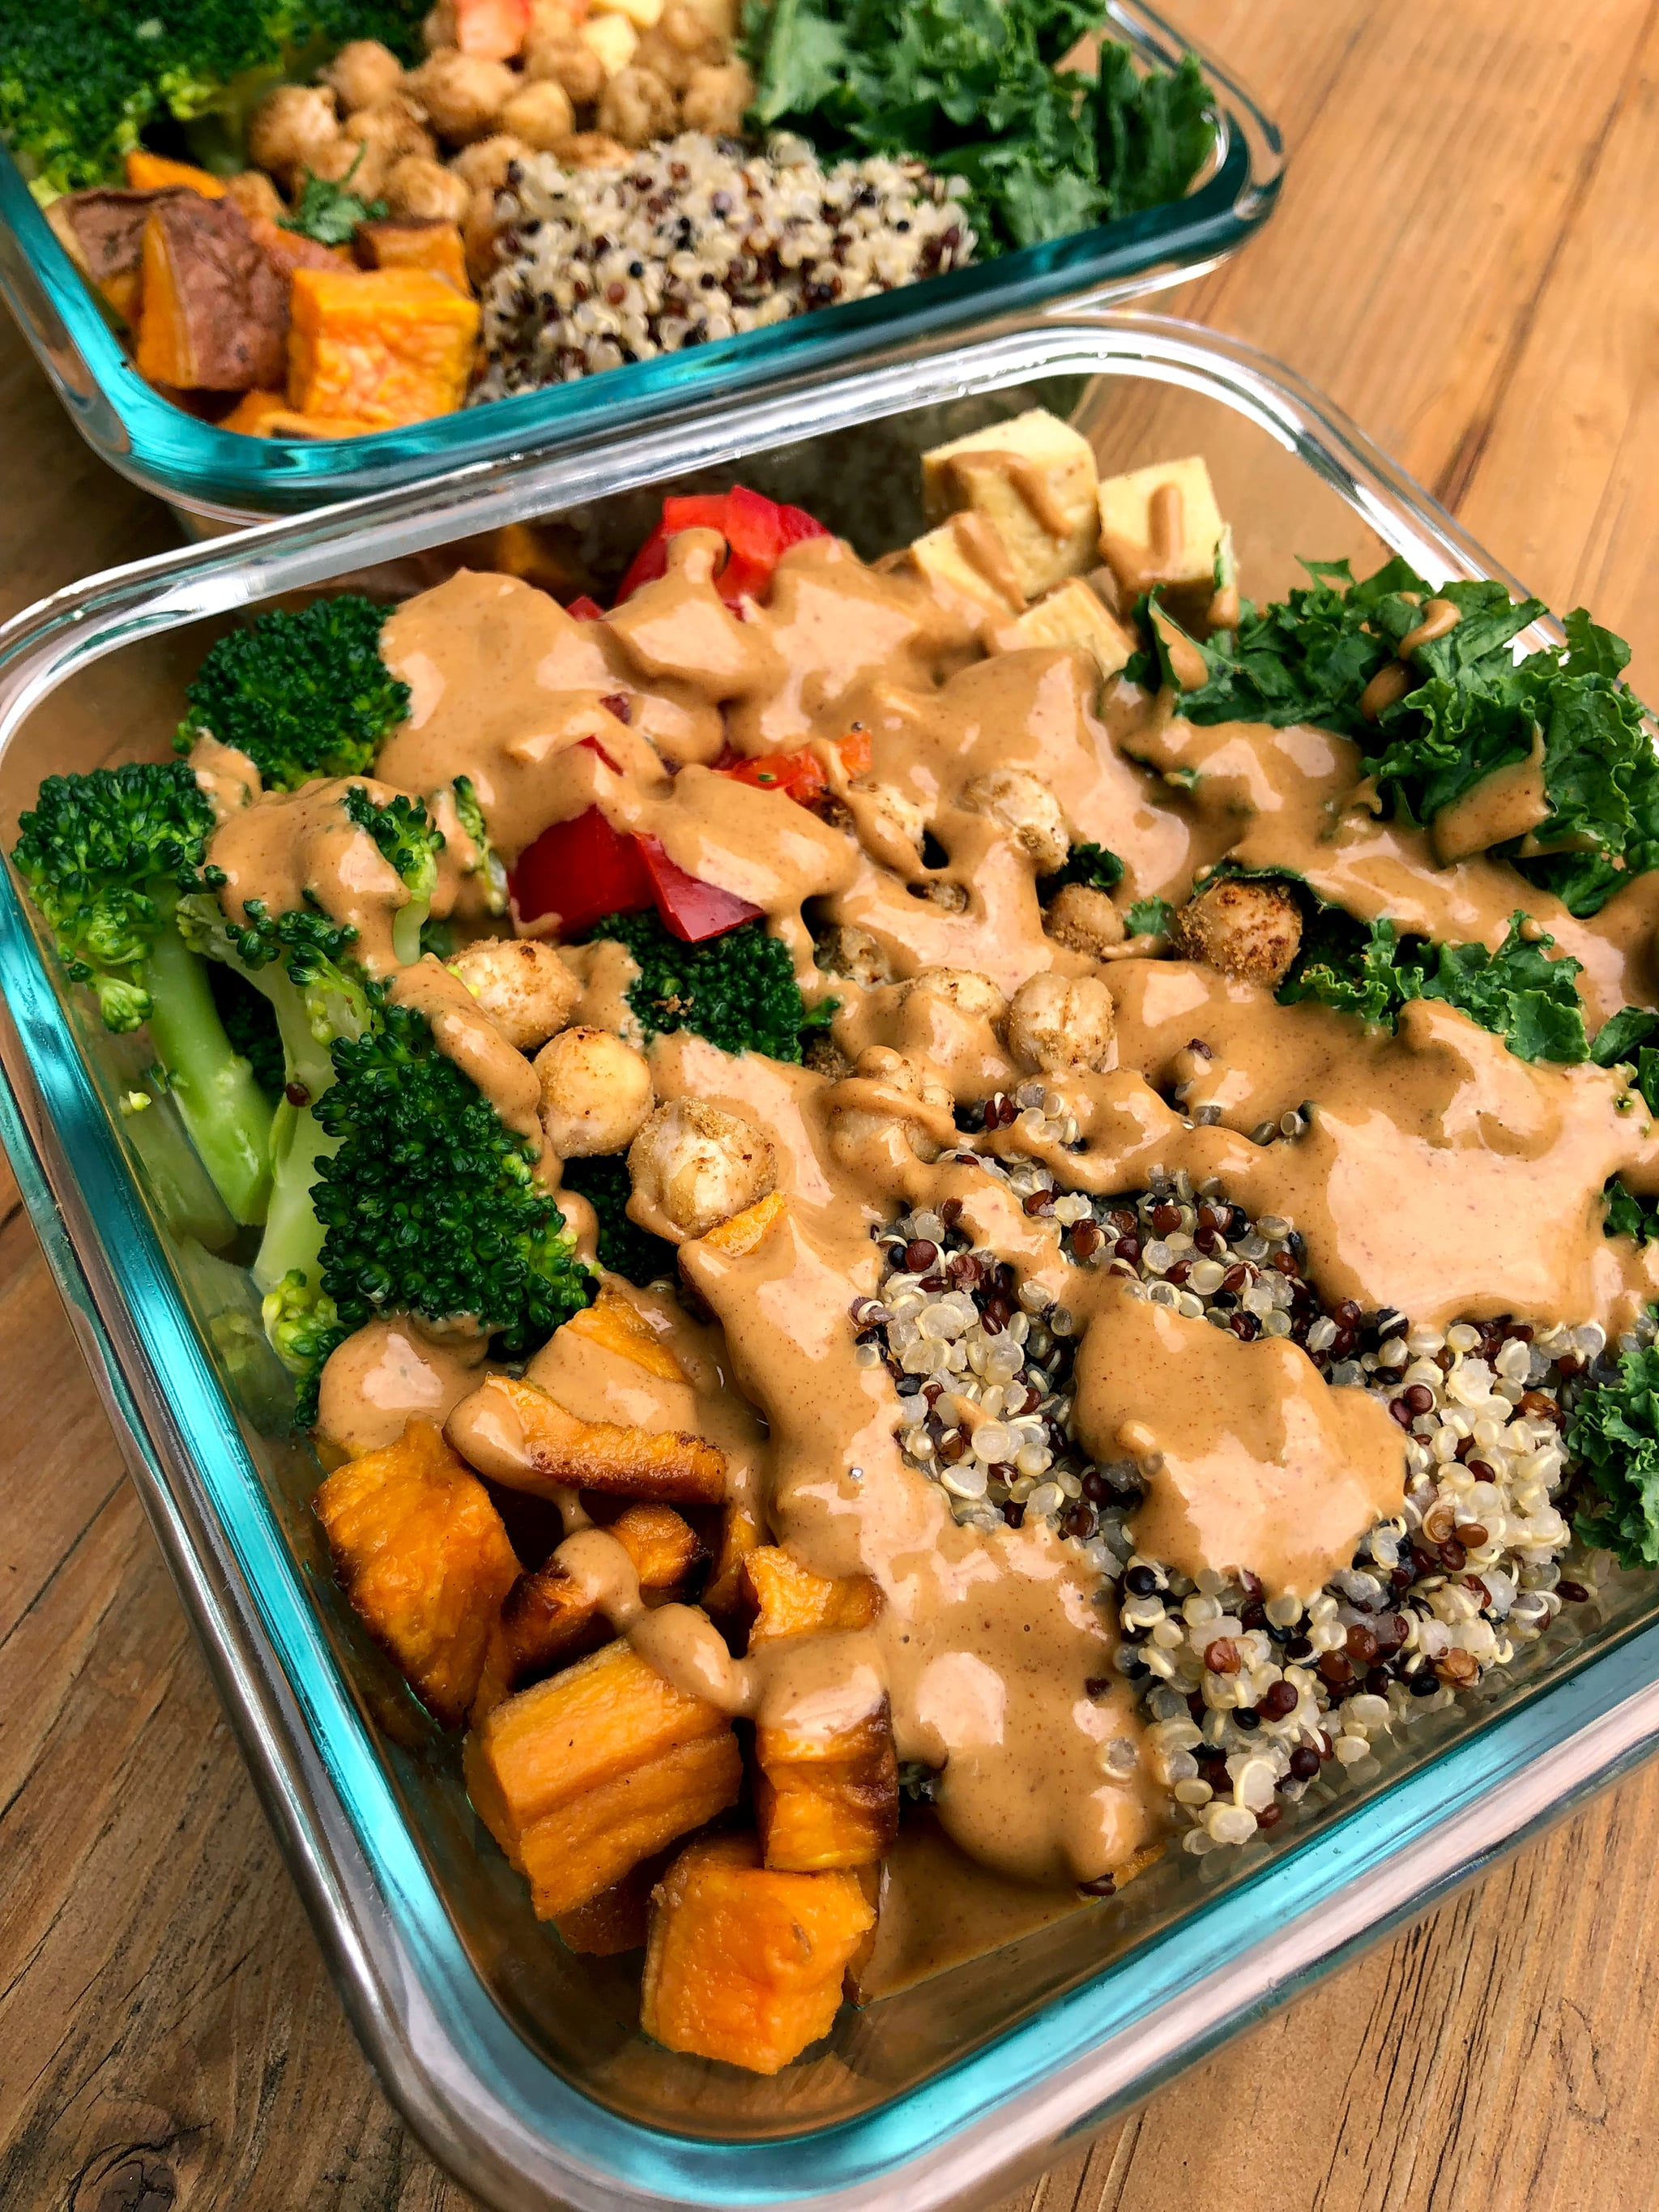 With 1 Hour of Prep, Make a Week's Worth of Sweet Potato Tofu Buddha Bowls With Peanut Sauce